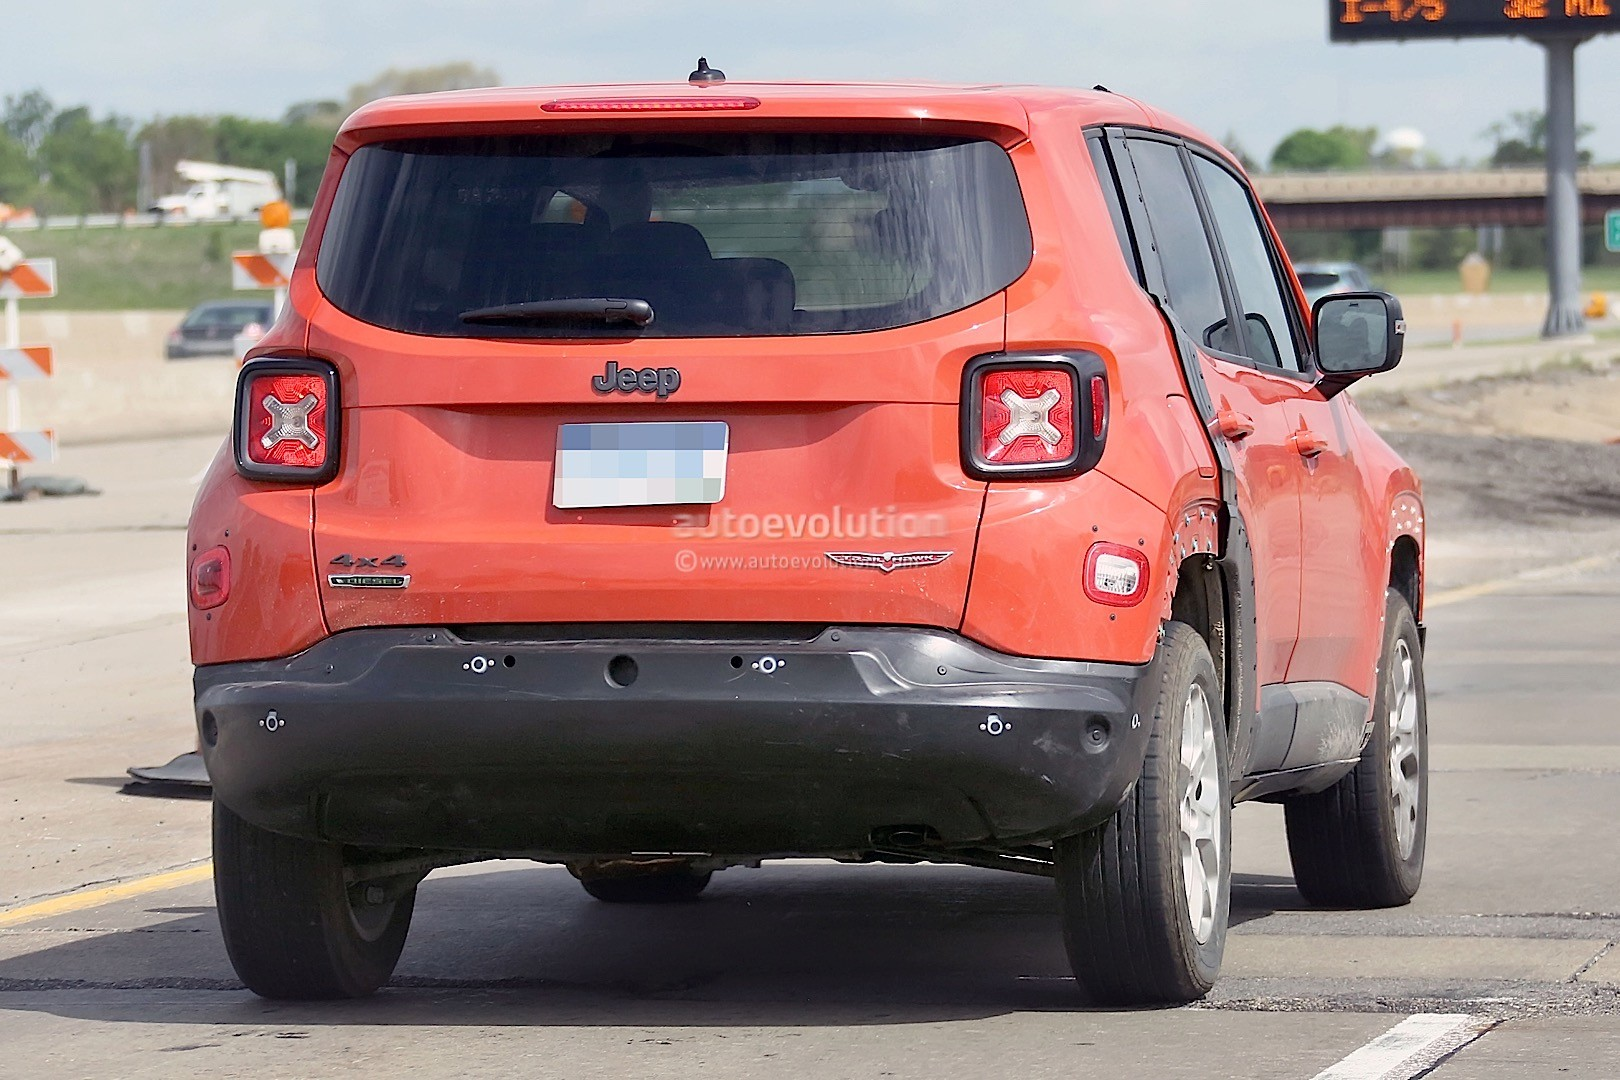 2017 jeep c suv prototype spied wearing renegade body. Black Bedroom Furniture Sets. Home Design Ideas